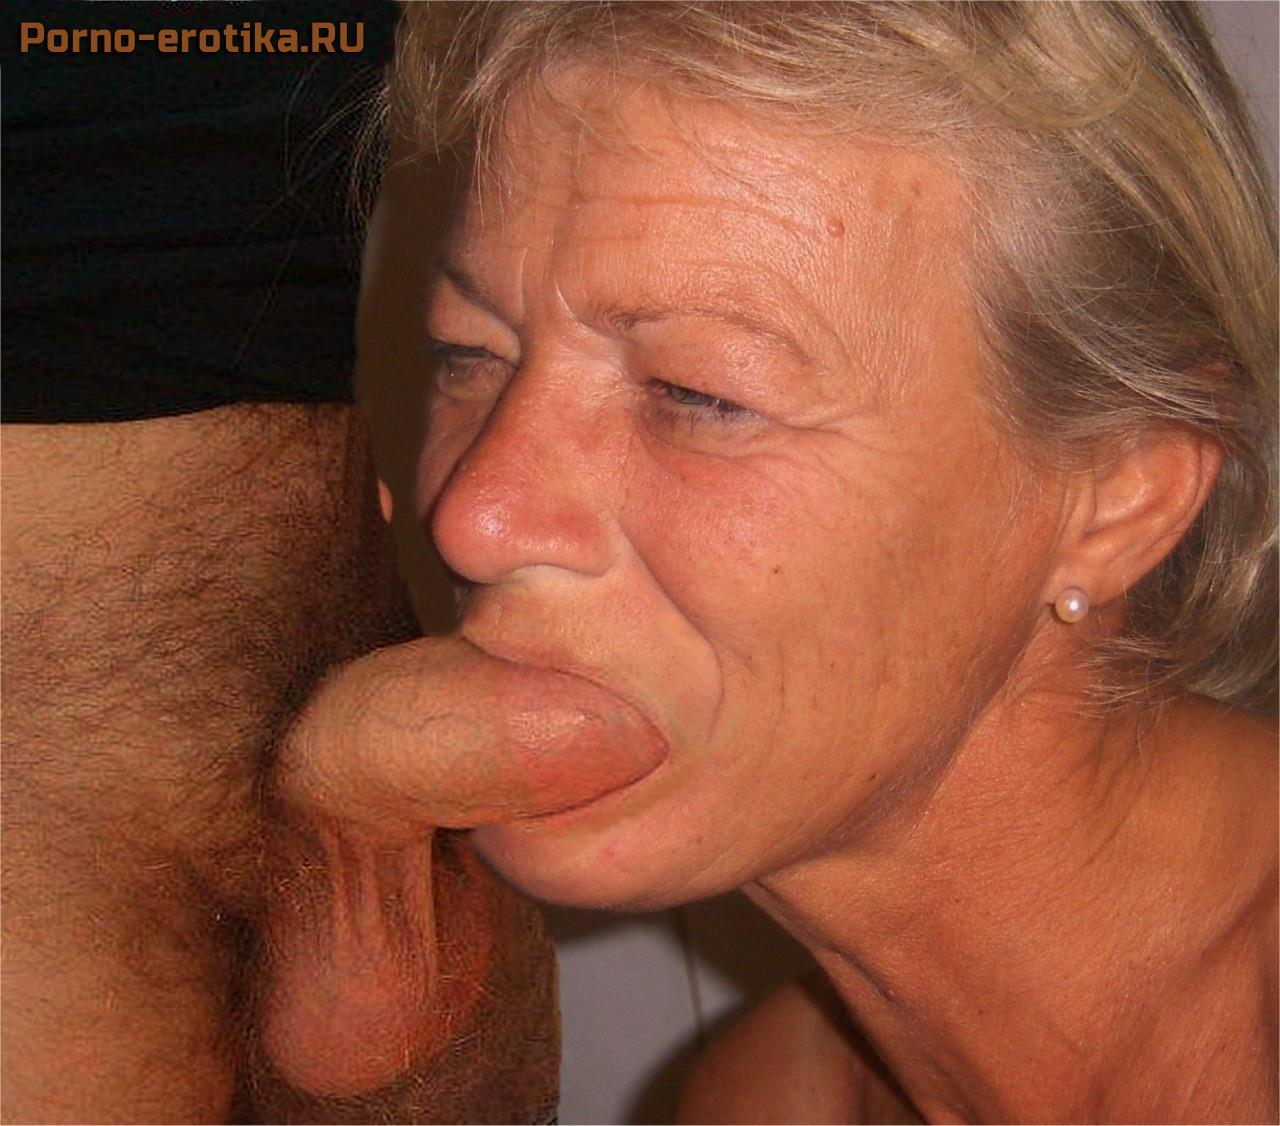 Old grannies sucking young cock — 13